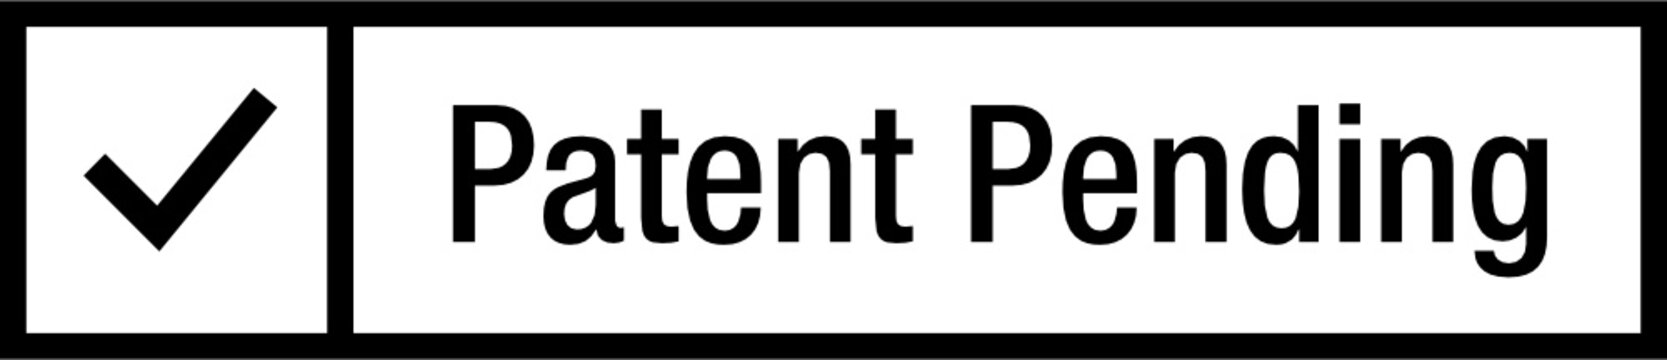 Patent Pending Check Stamp Icon Symbol